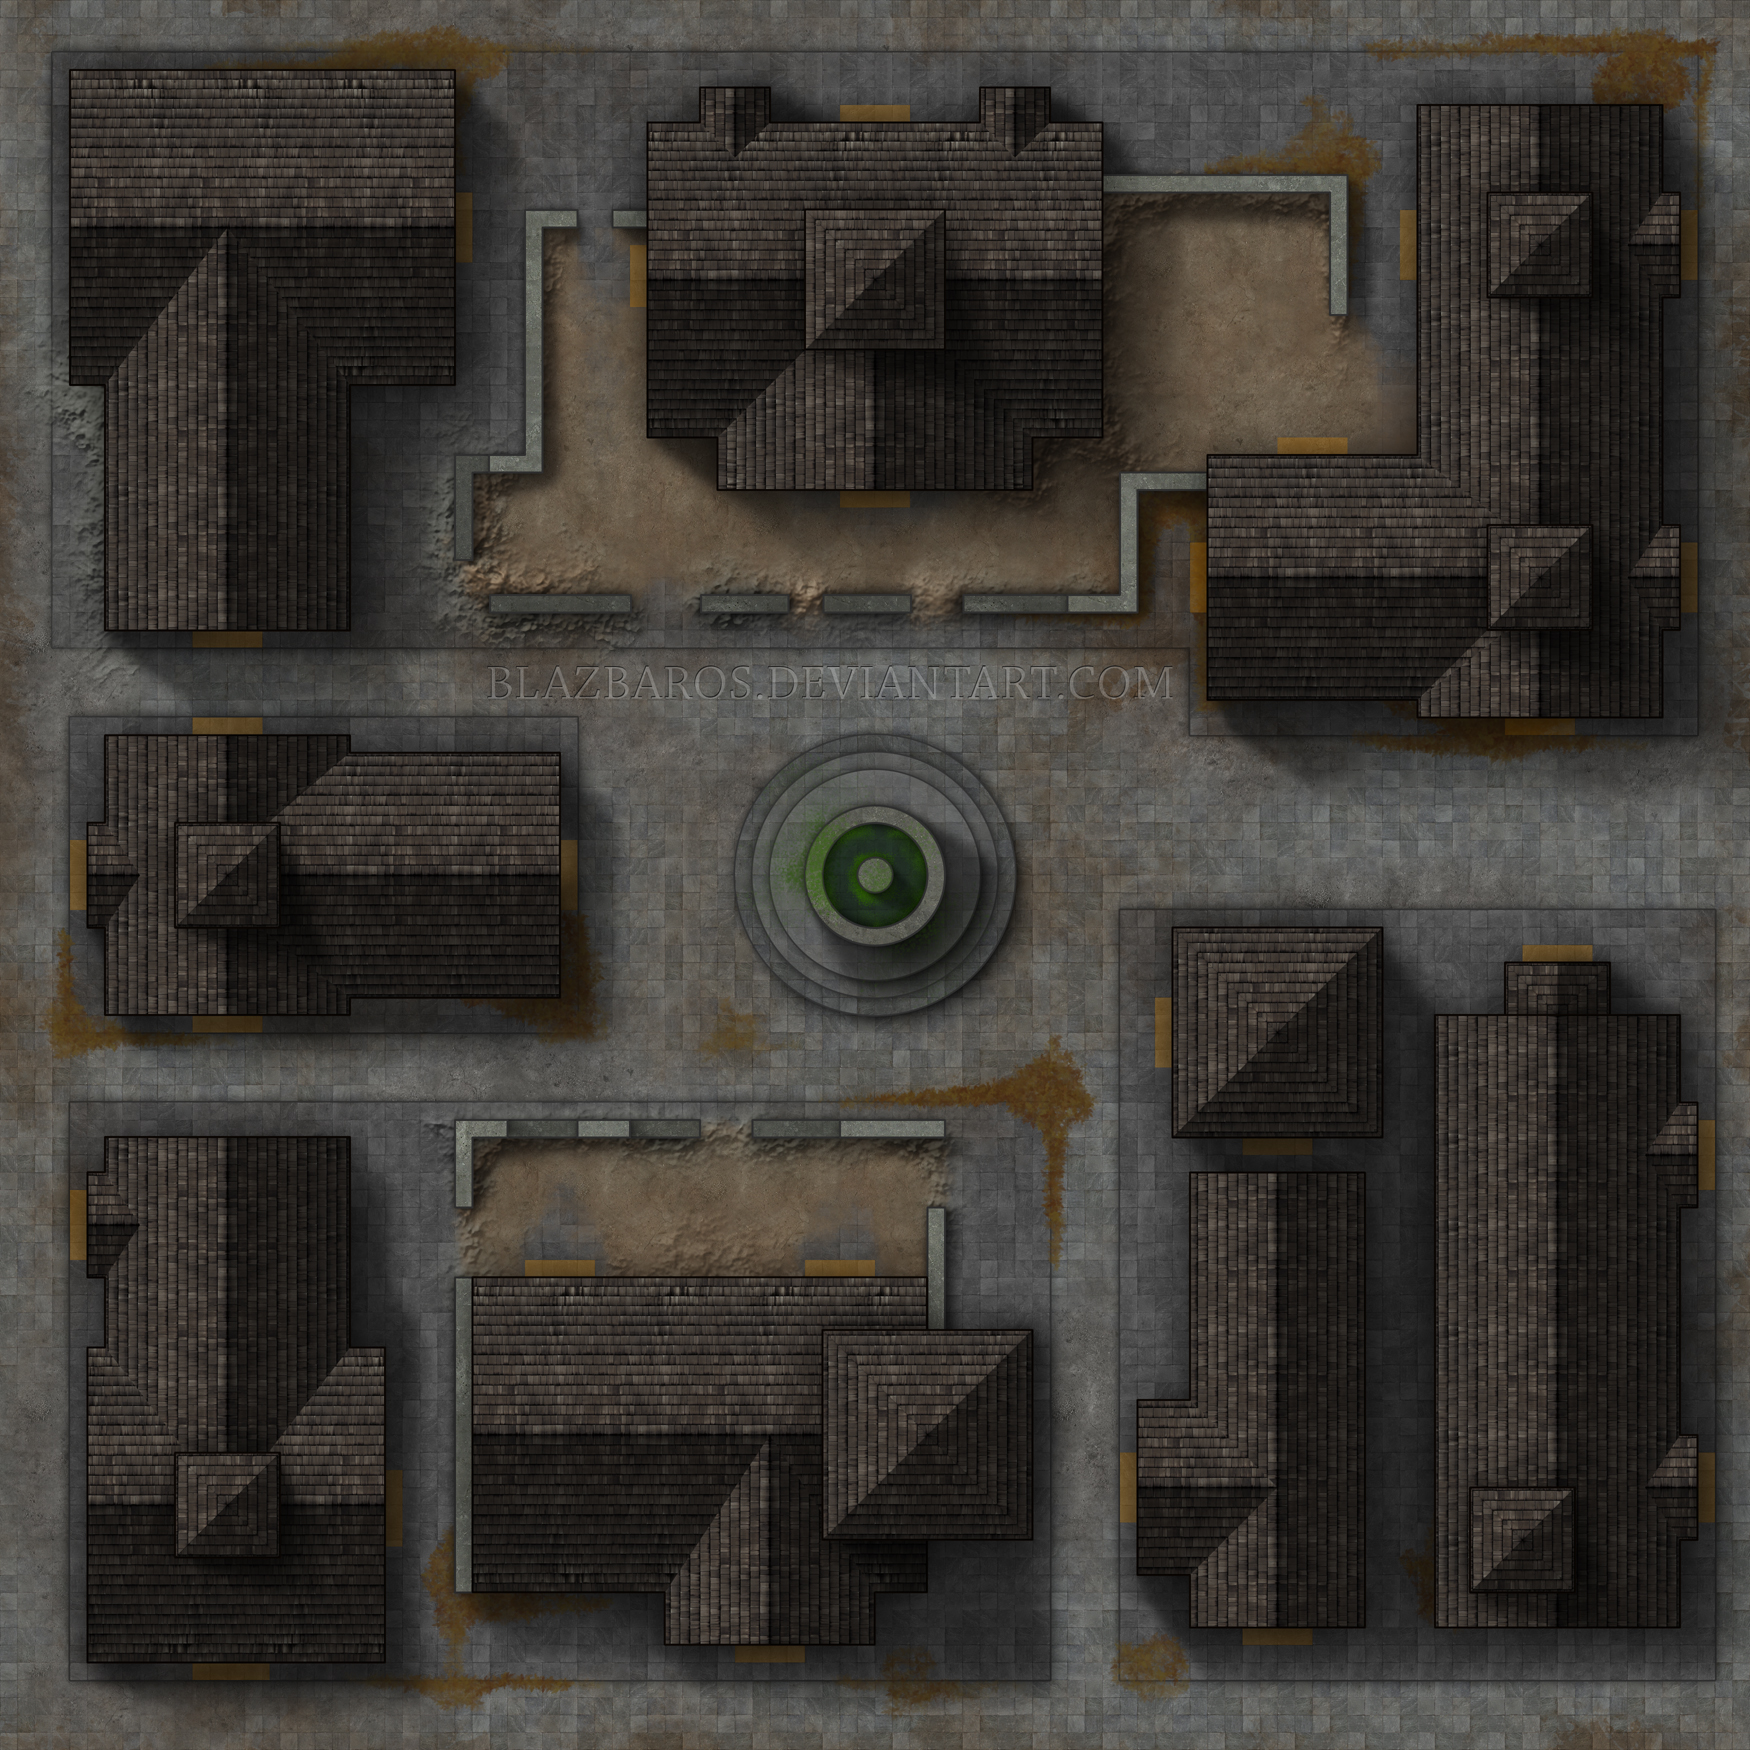 Town Square Map Mordheim Map 1: Town Square by Blazbaros on DeviantArt